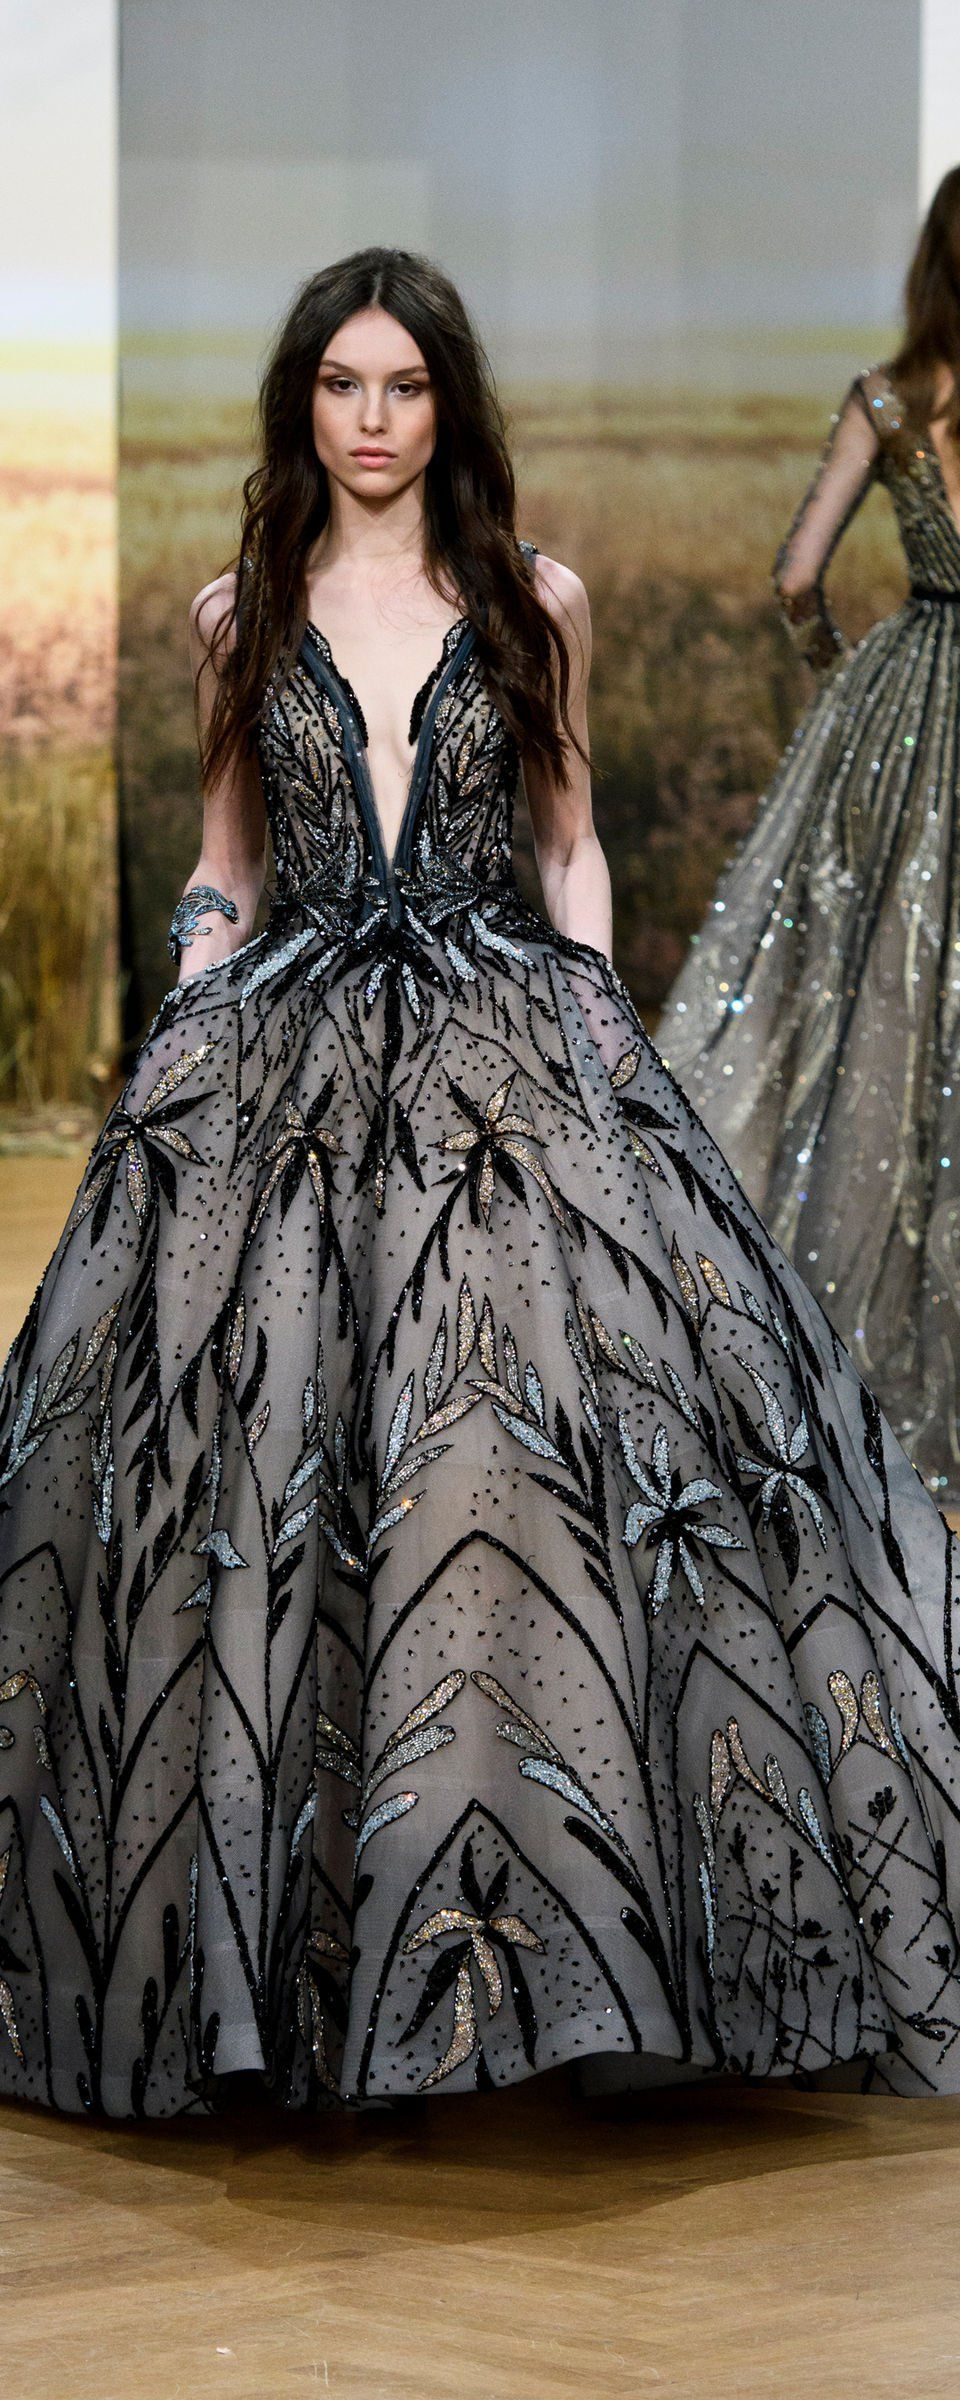 Pin by Shannon Martin on Jesters  Fancy dresses, Gorgeous dresses